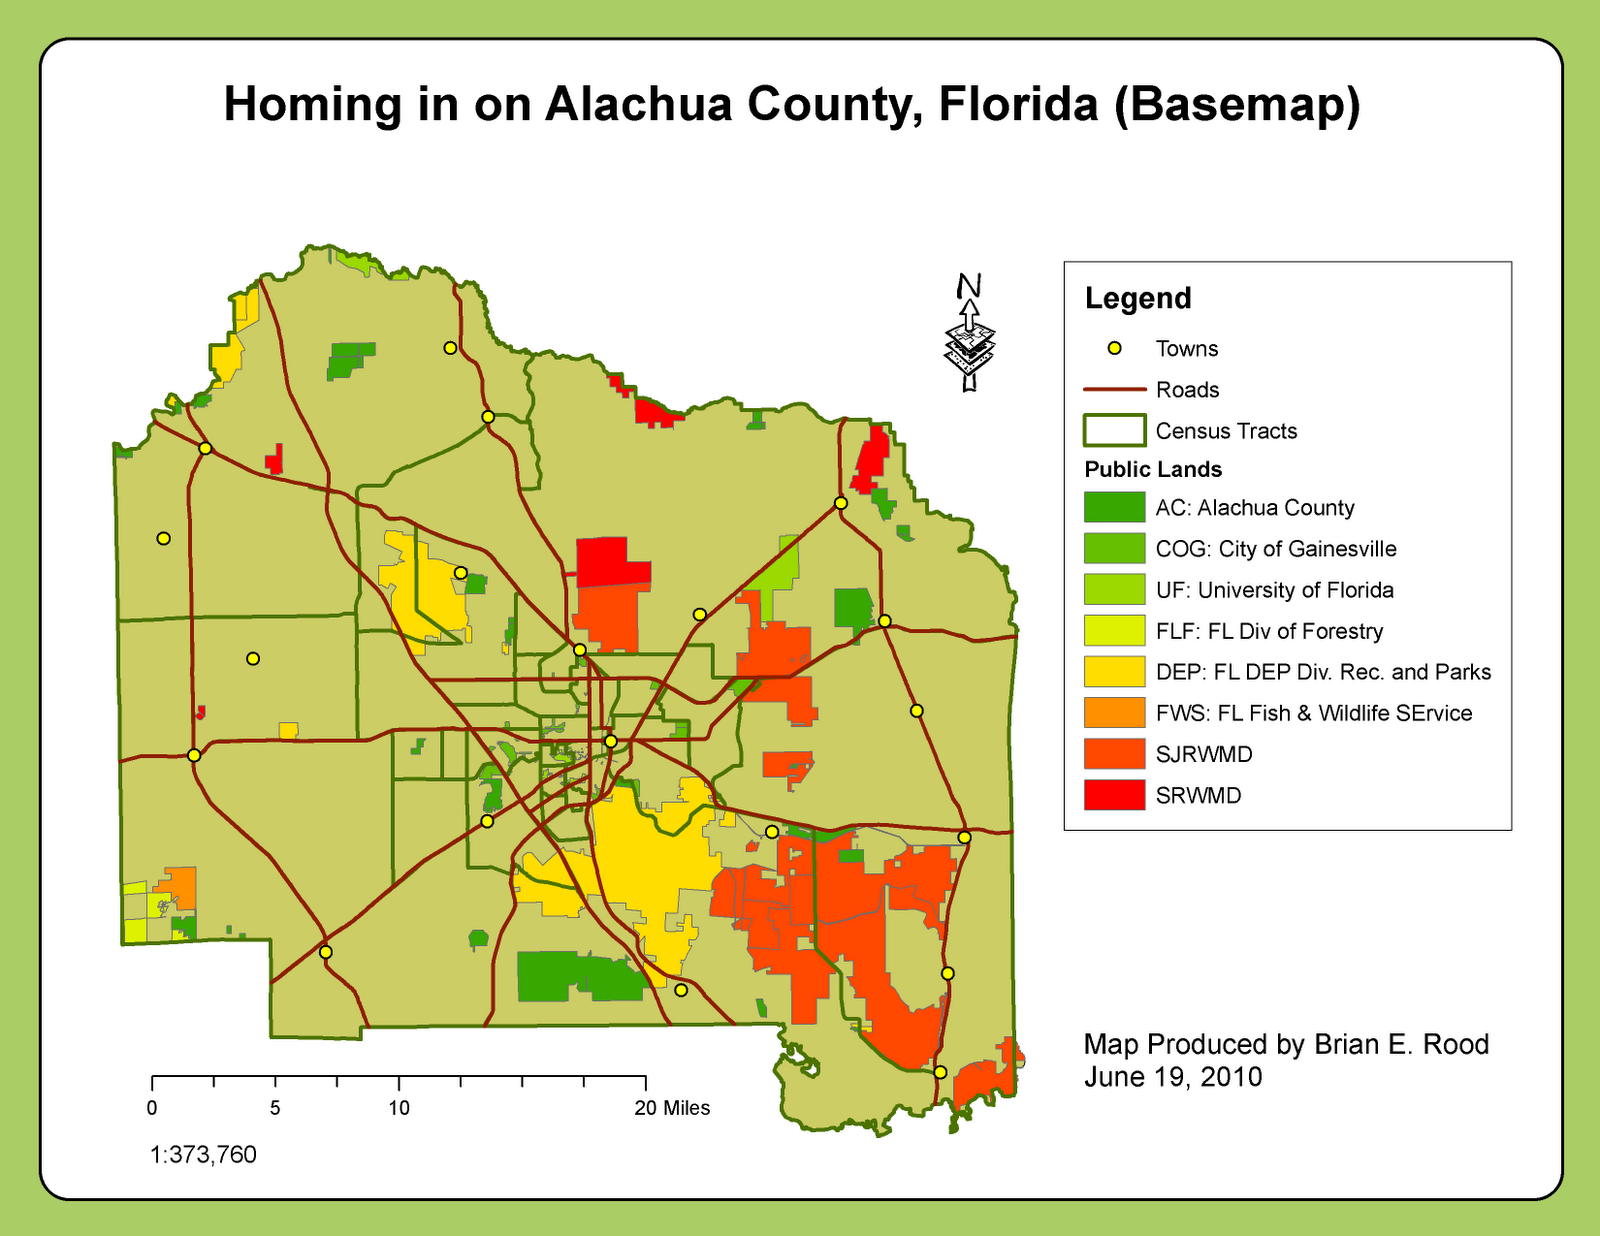 Applications in GIS - Rood: Week 6: Homing in on Alachua ... on map of volusia county, map of pasco county, map of okaloosa county, map of polk county, map of simpson county, map of wauchula county, map of lafayette county, map of marion county, map of st. lucie county, map of manatee county, map of duval county, map of gadsden county, map of dade county public schools, map of martin county, map of glades county, map of addison county, map of washington county, map of jackson county, map of st. johns county, map of appanoose county,